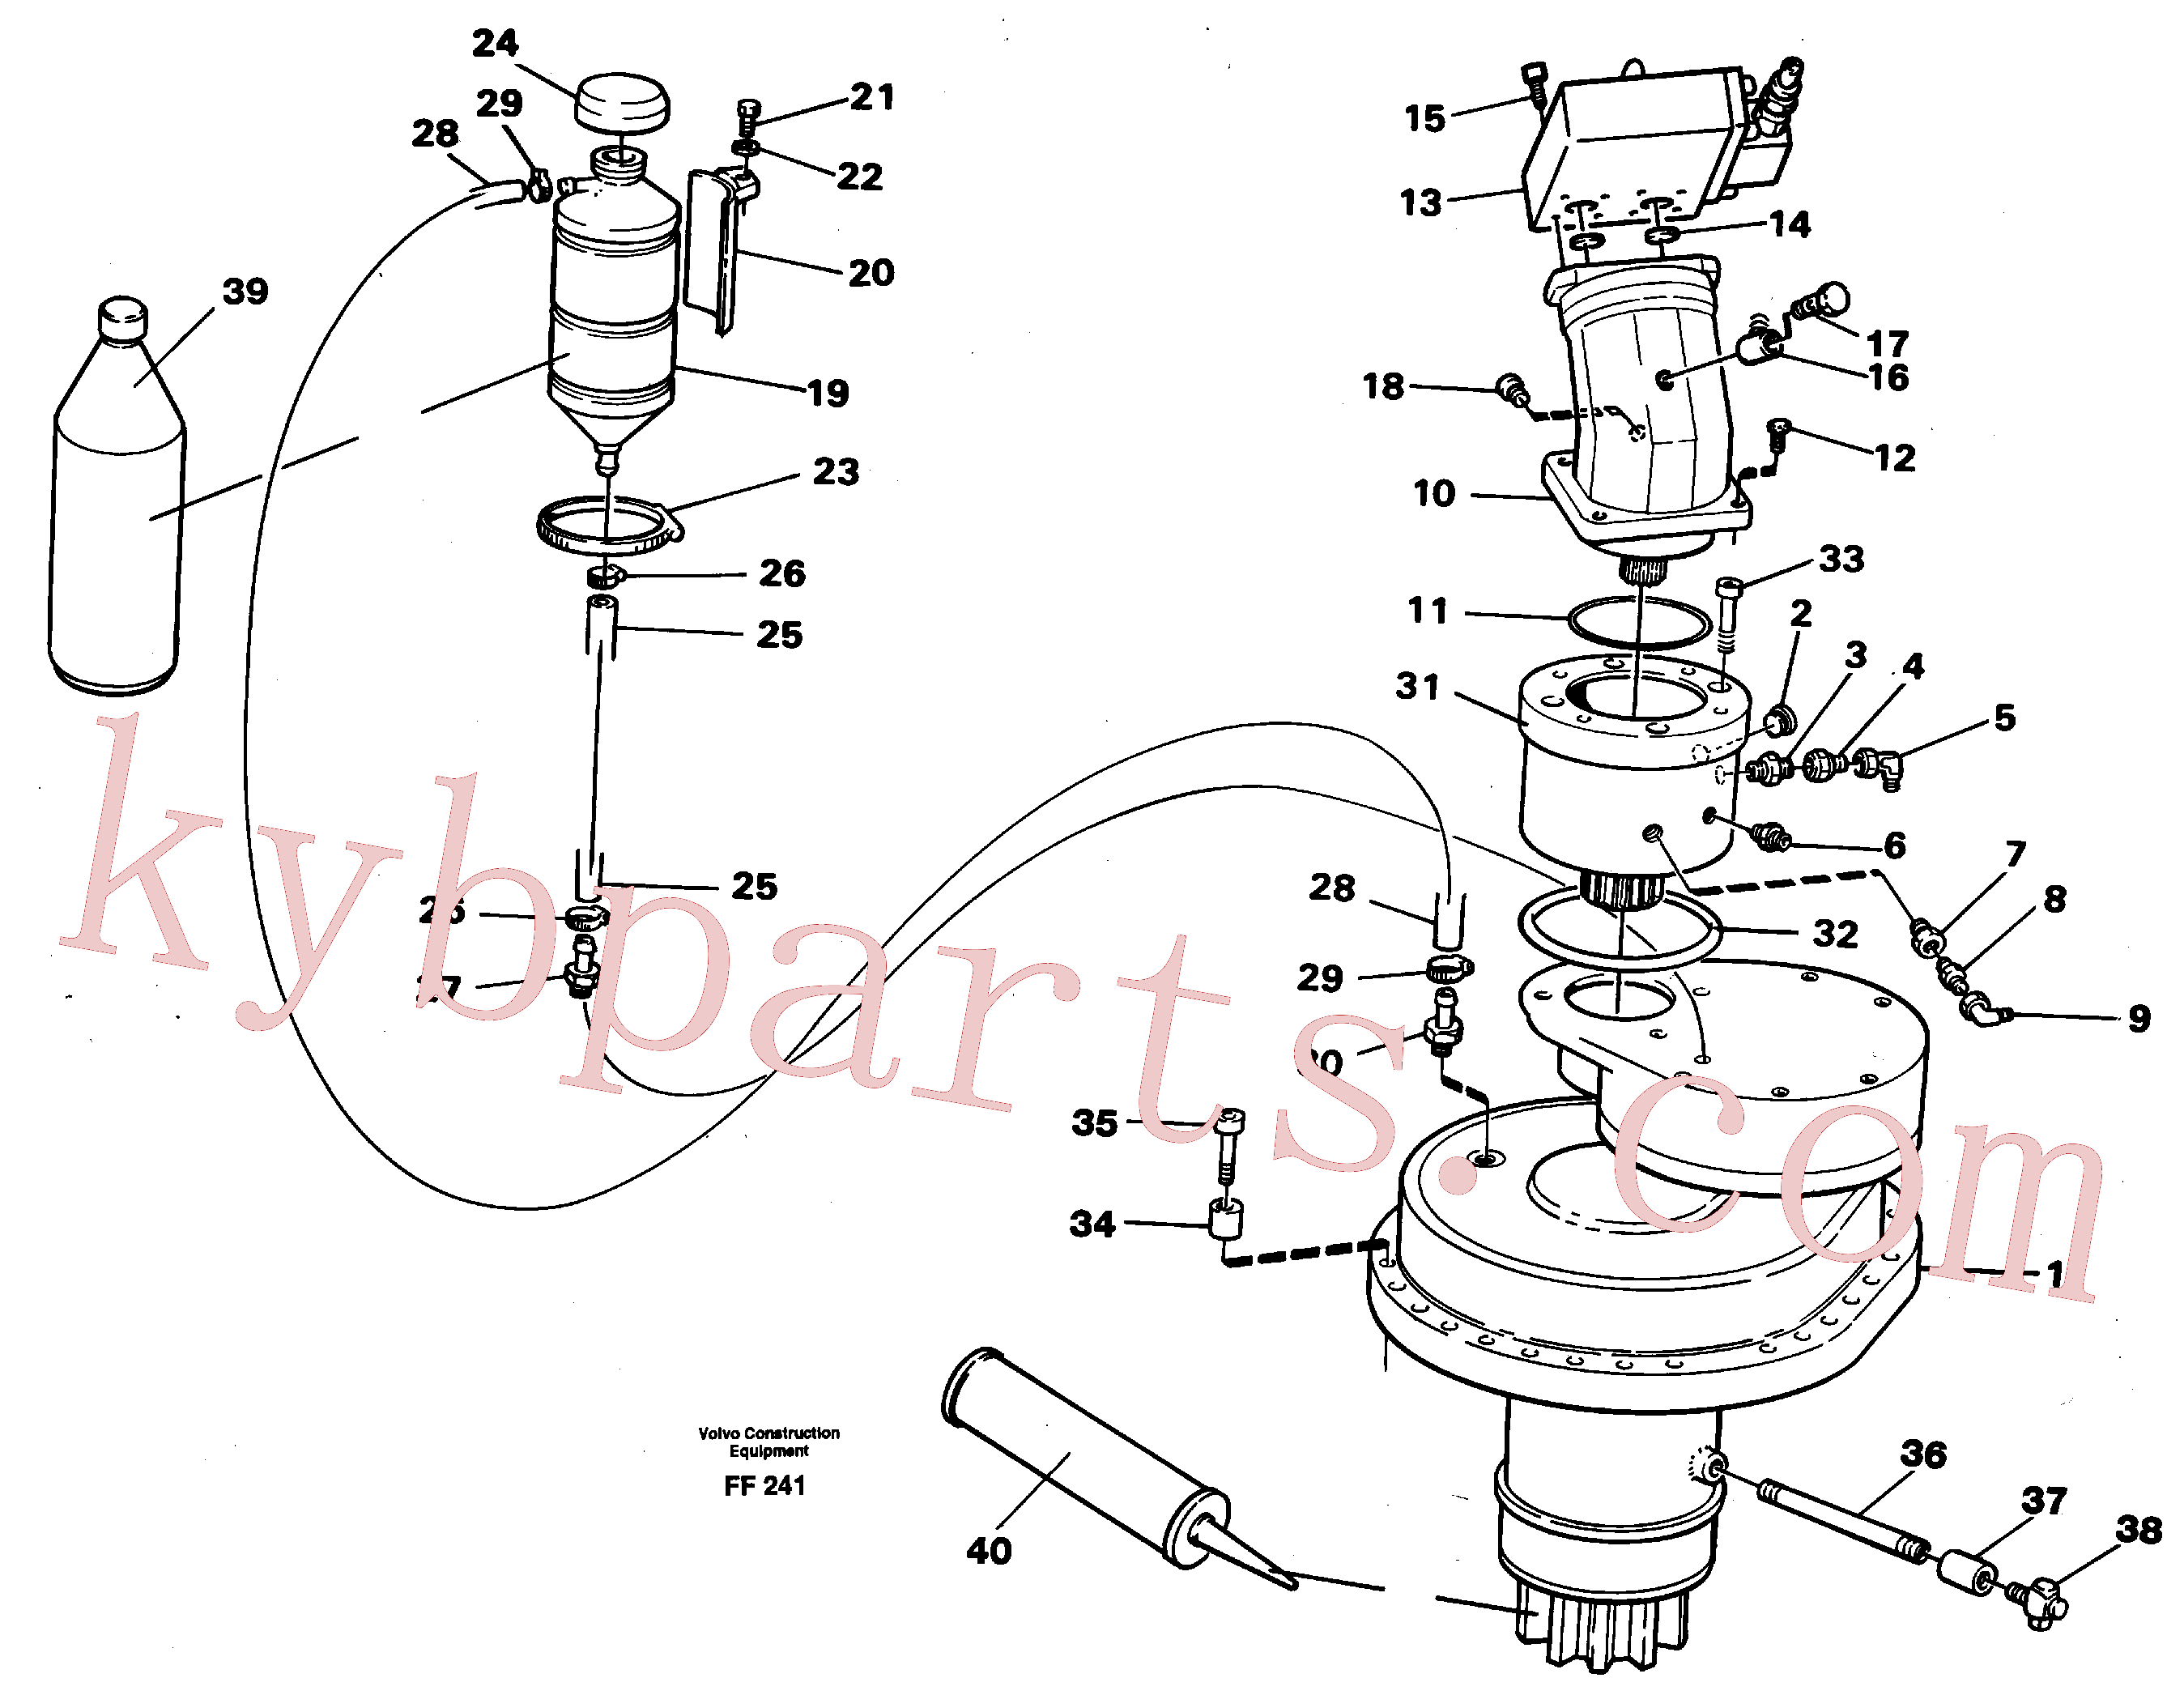 VOE14252875 for Volvo Slewing gear box with fitting parts(FF241 assembly)